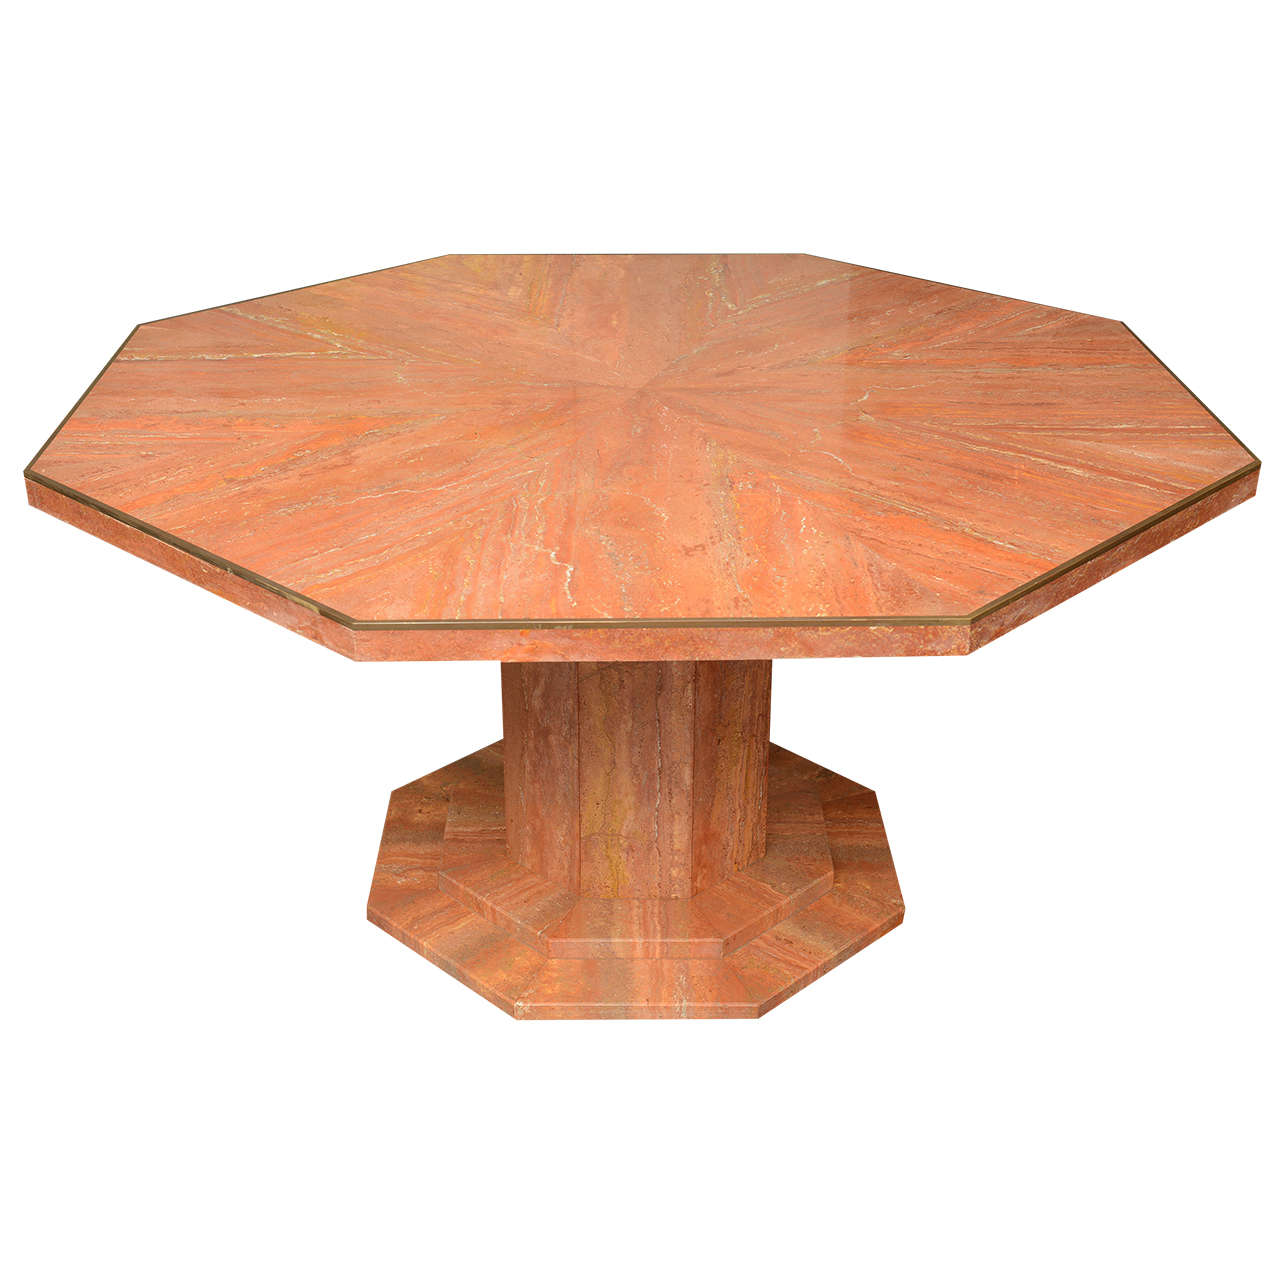 Octagonal Marble Dining Table at 1stdibs : X from www.1stdibs.com size 1280 x 1280 jpeg 99kB